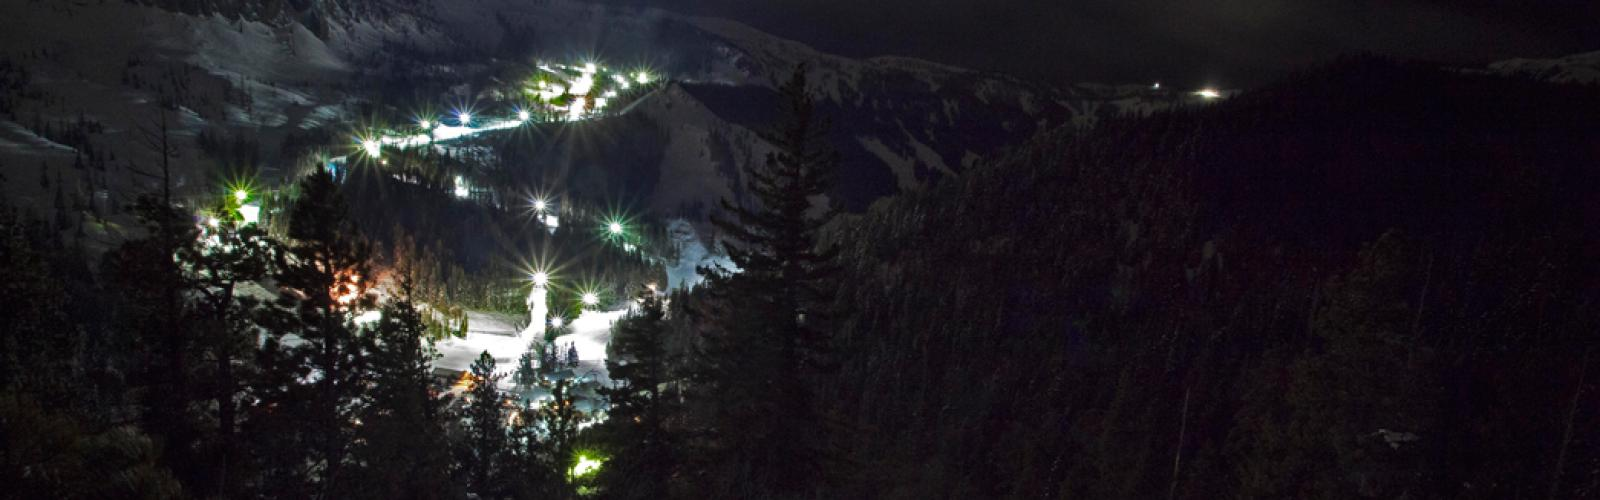 Night Skiing terrain seen from a distance